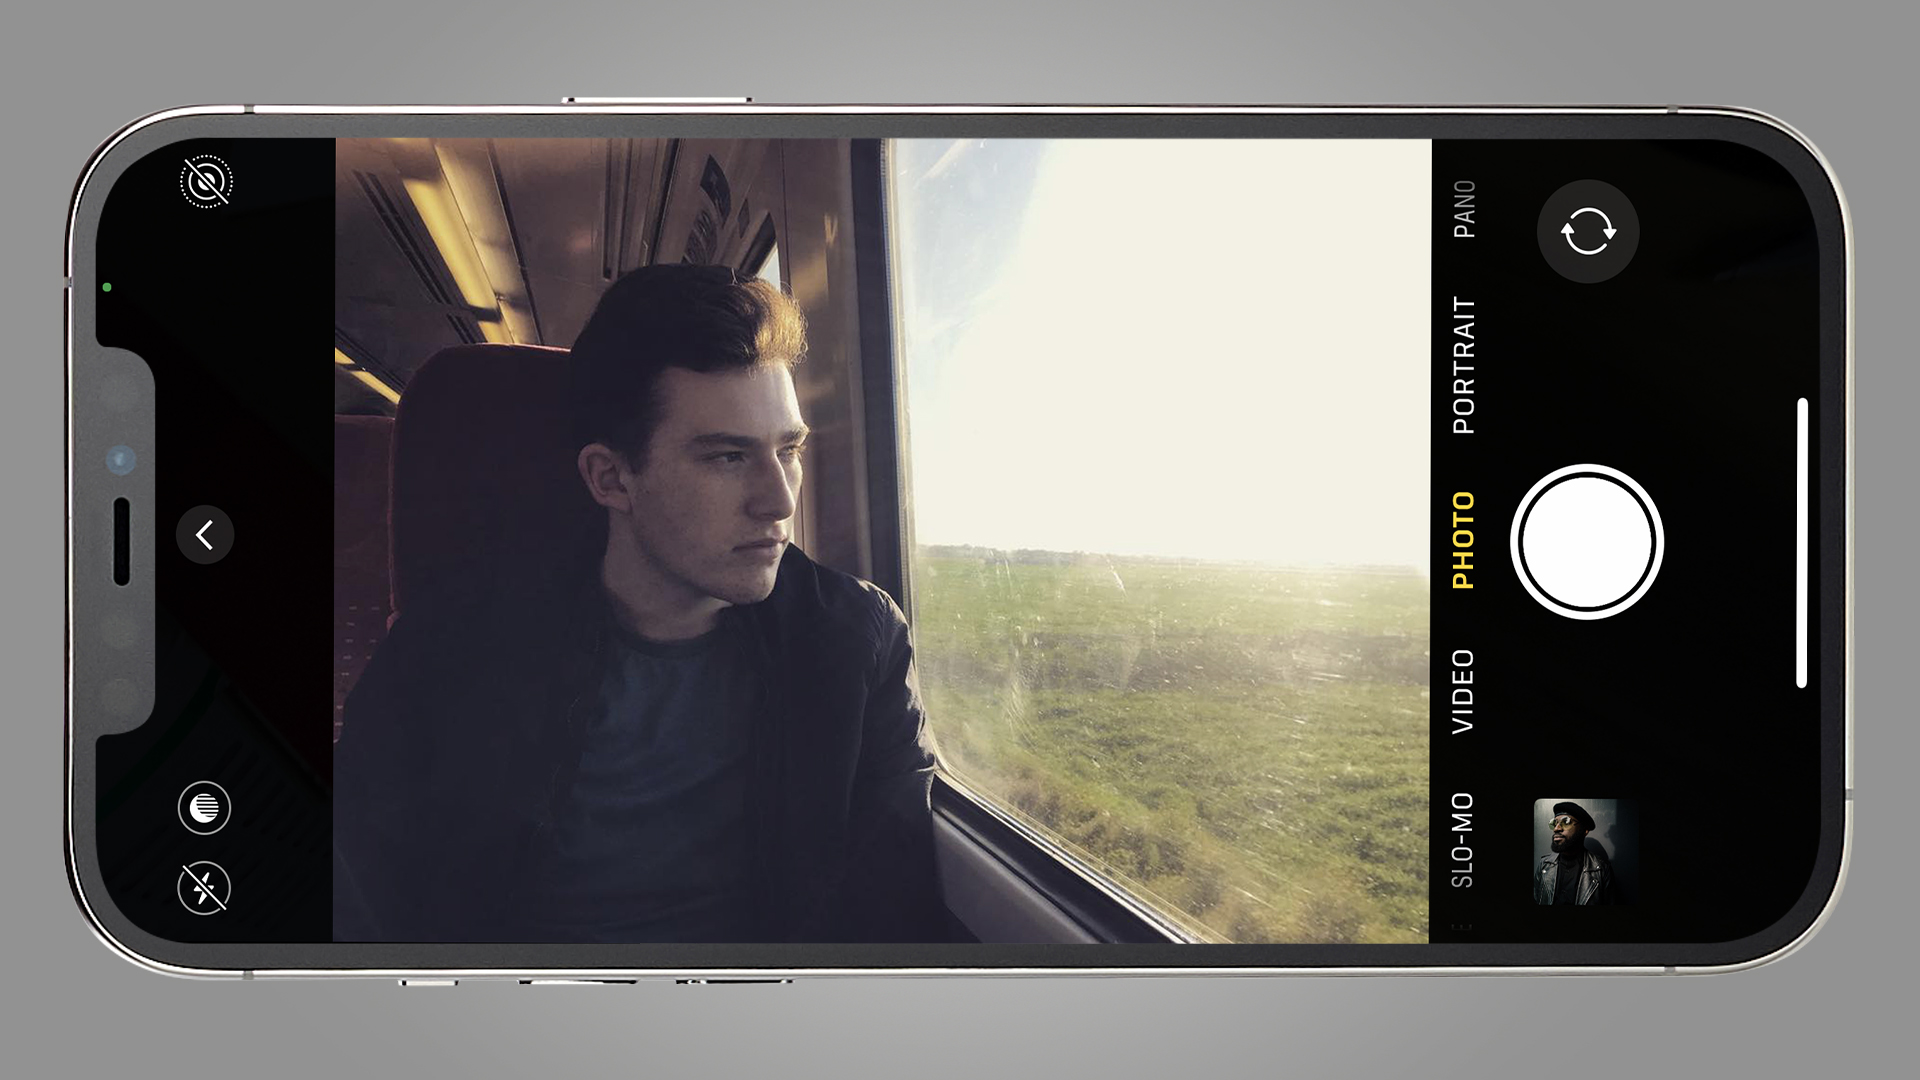 A man looking out of a train window on a phone screen